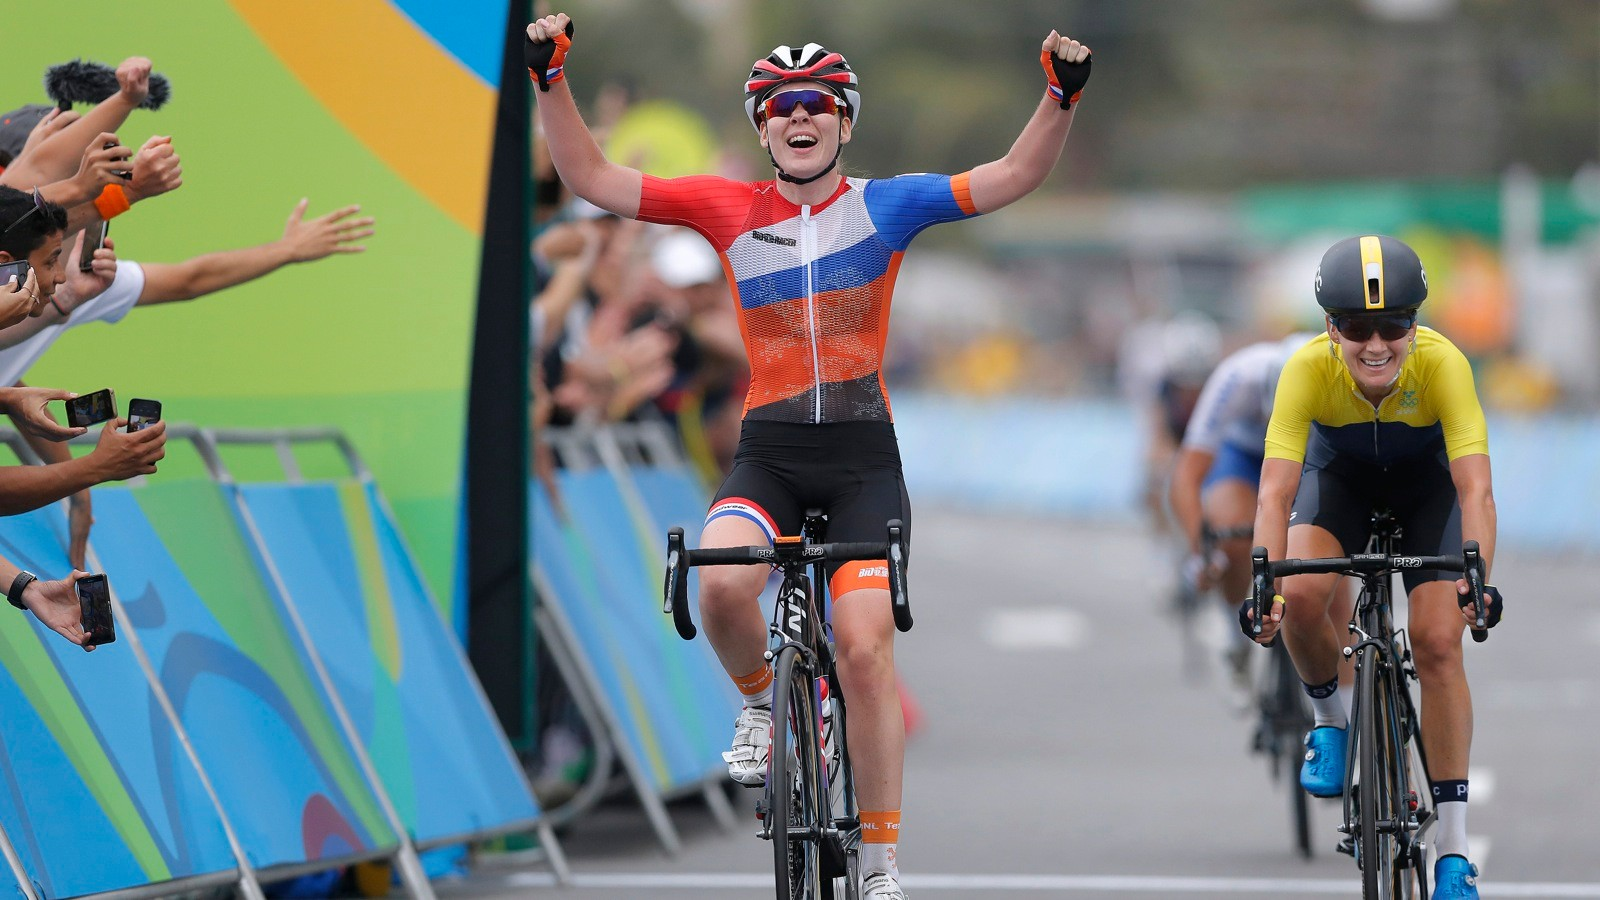 Anna van der Breggen won the Olympic road race on a Liv bike — but you won't hear Giant talking about it during the Olympics